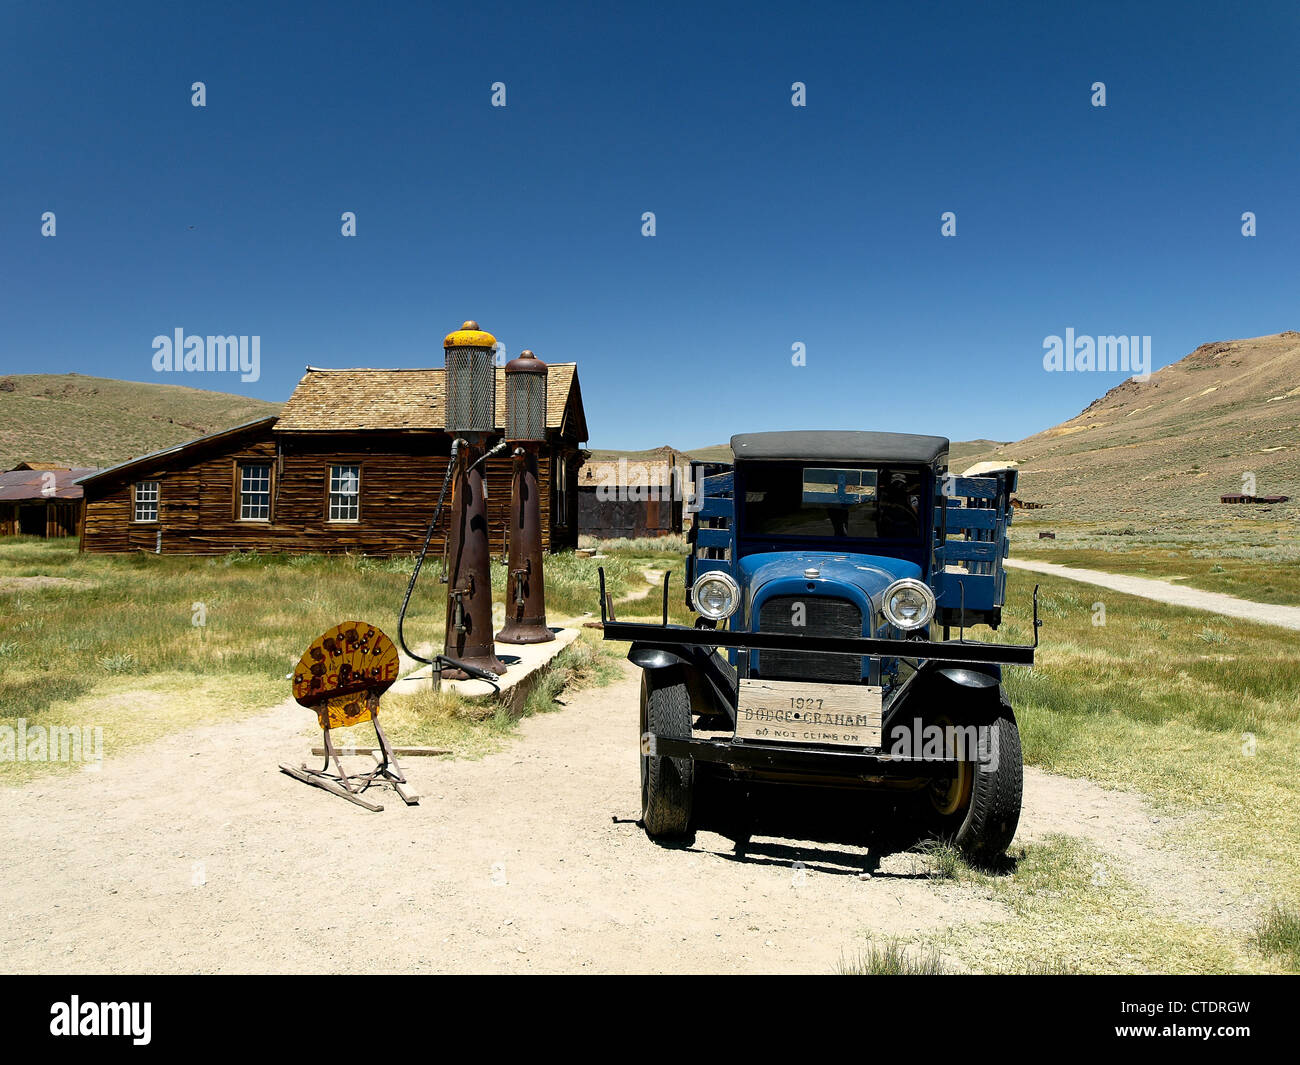 An old truck at a gas station in Bodie, a ghost town in California, United States. - Stock Image